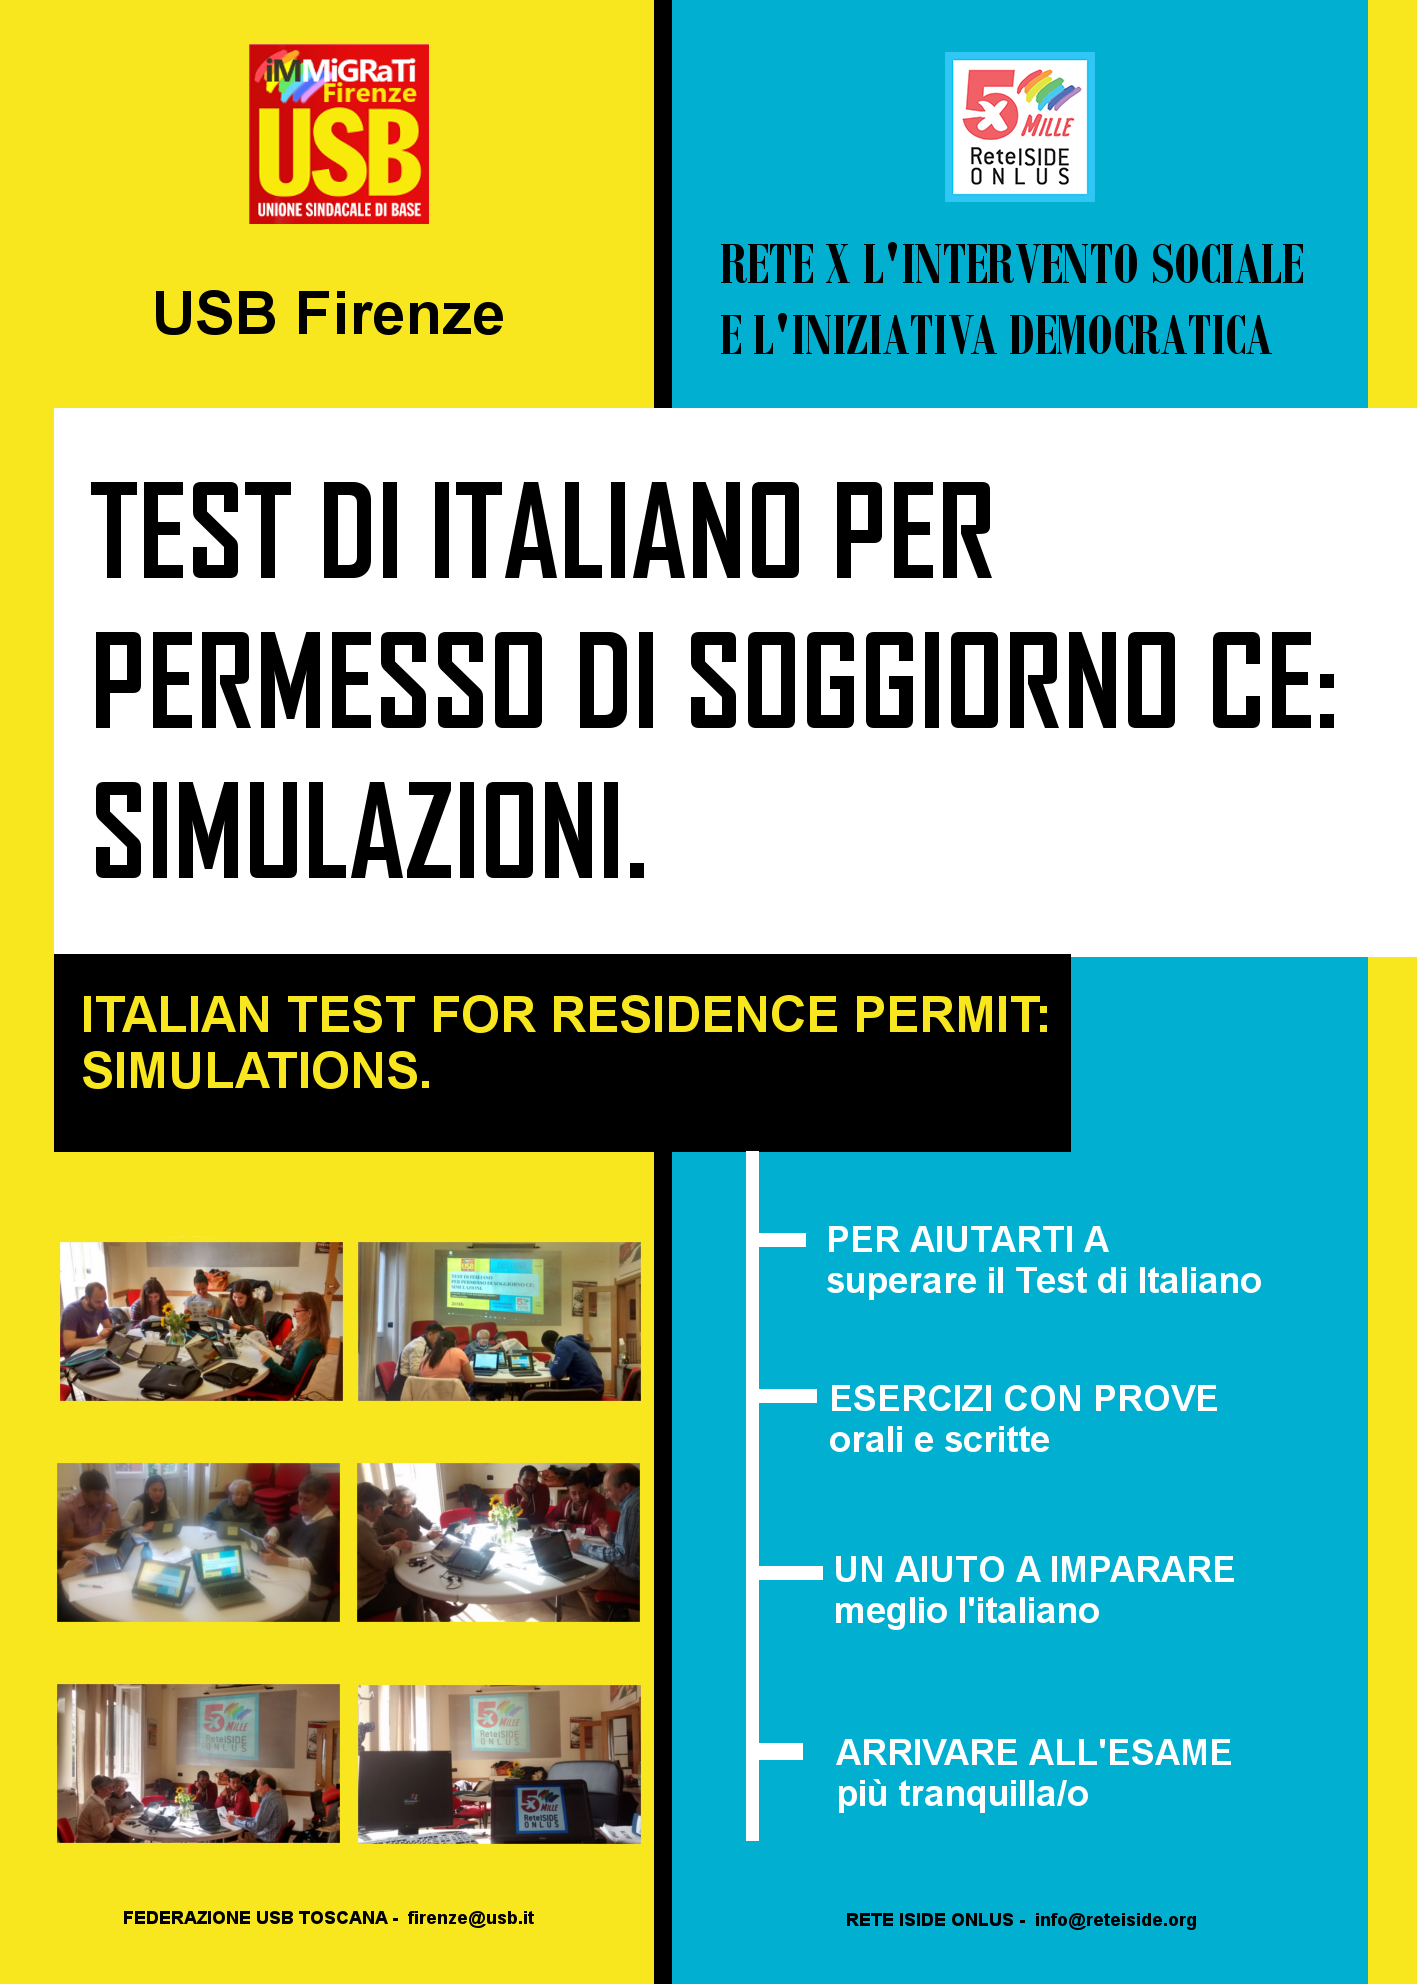 Italian Test for Residence Permit Simulation | Rete Iside ONLUS